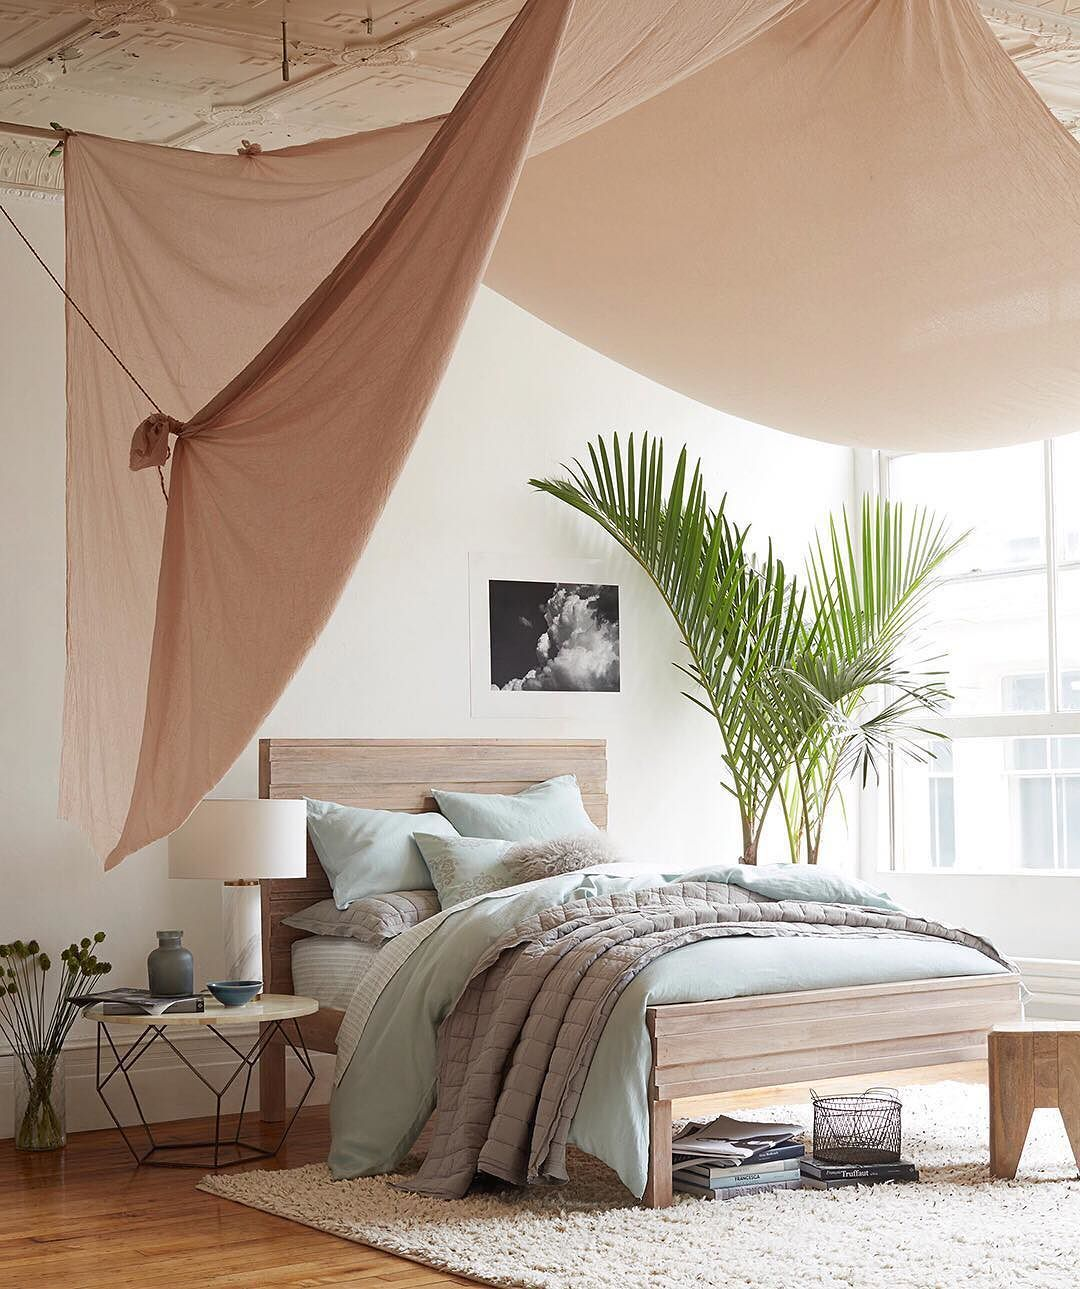 Bedroom Furniture You Ll Love: We Love A Bedroom That Looks Good And Does Good. Our Stria